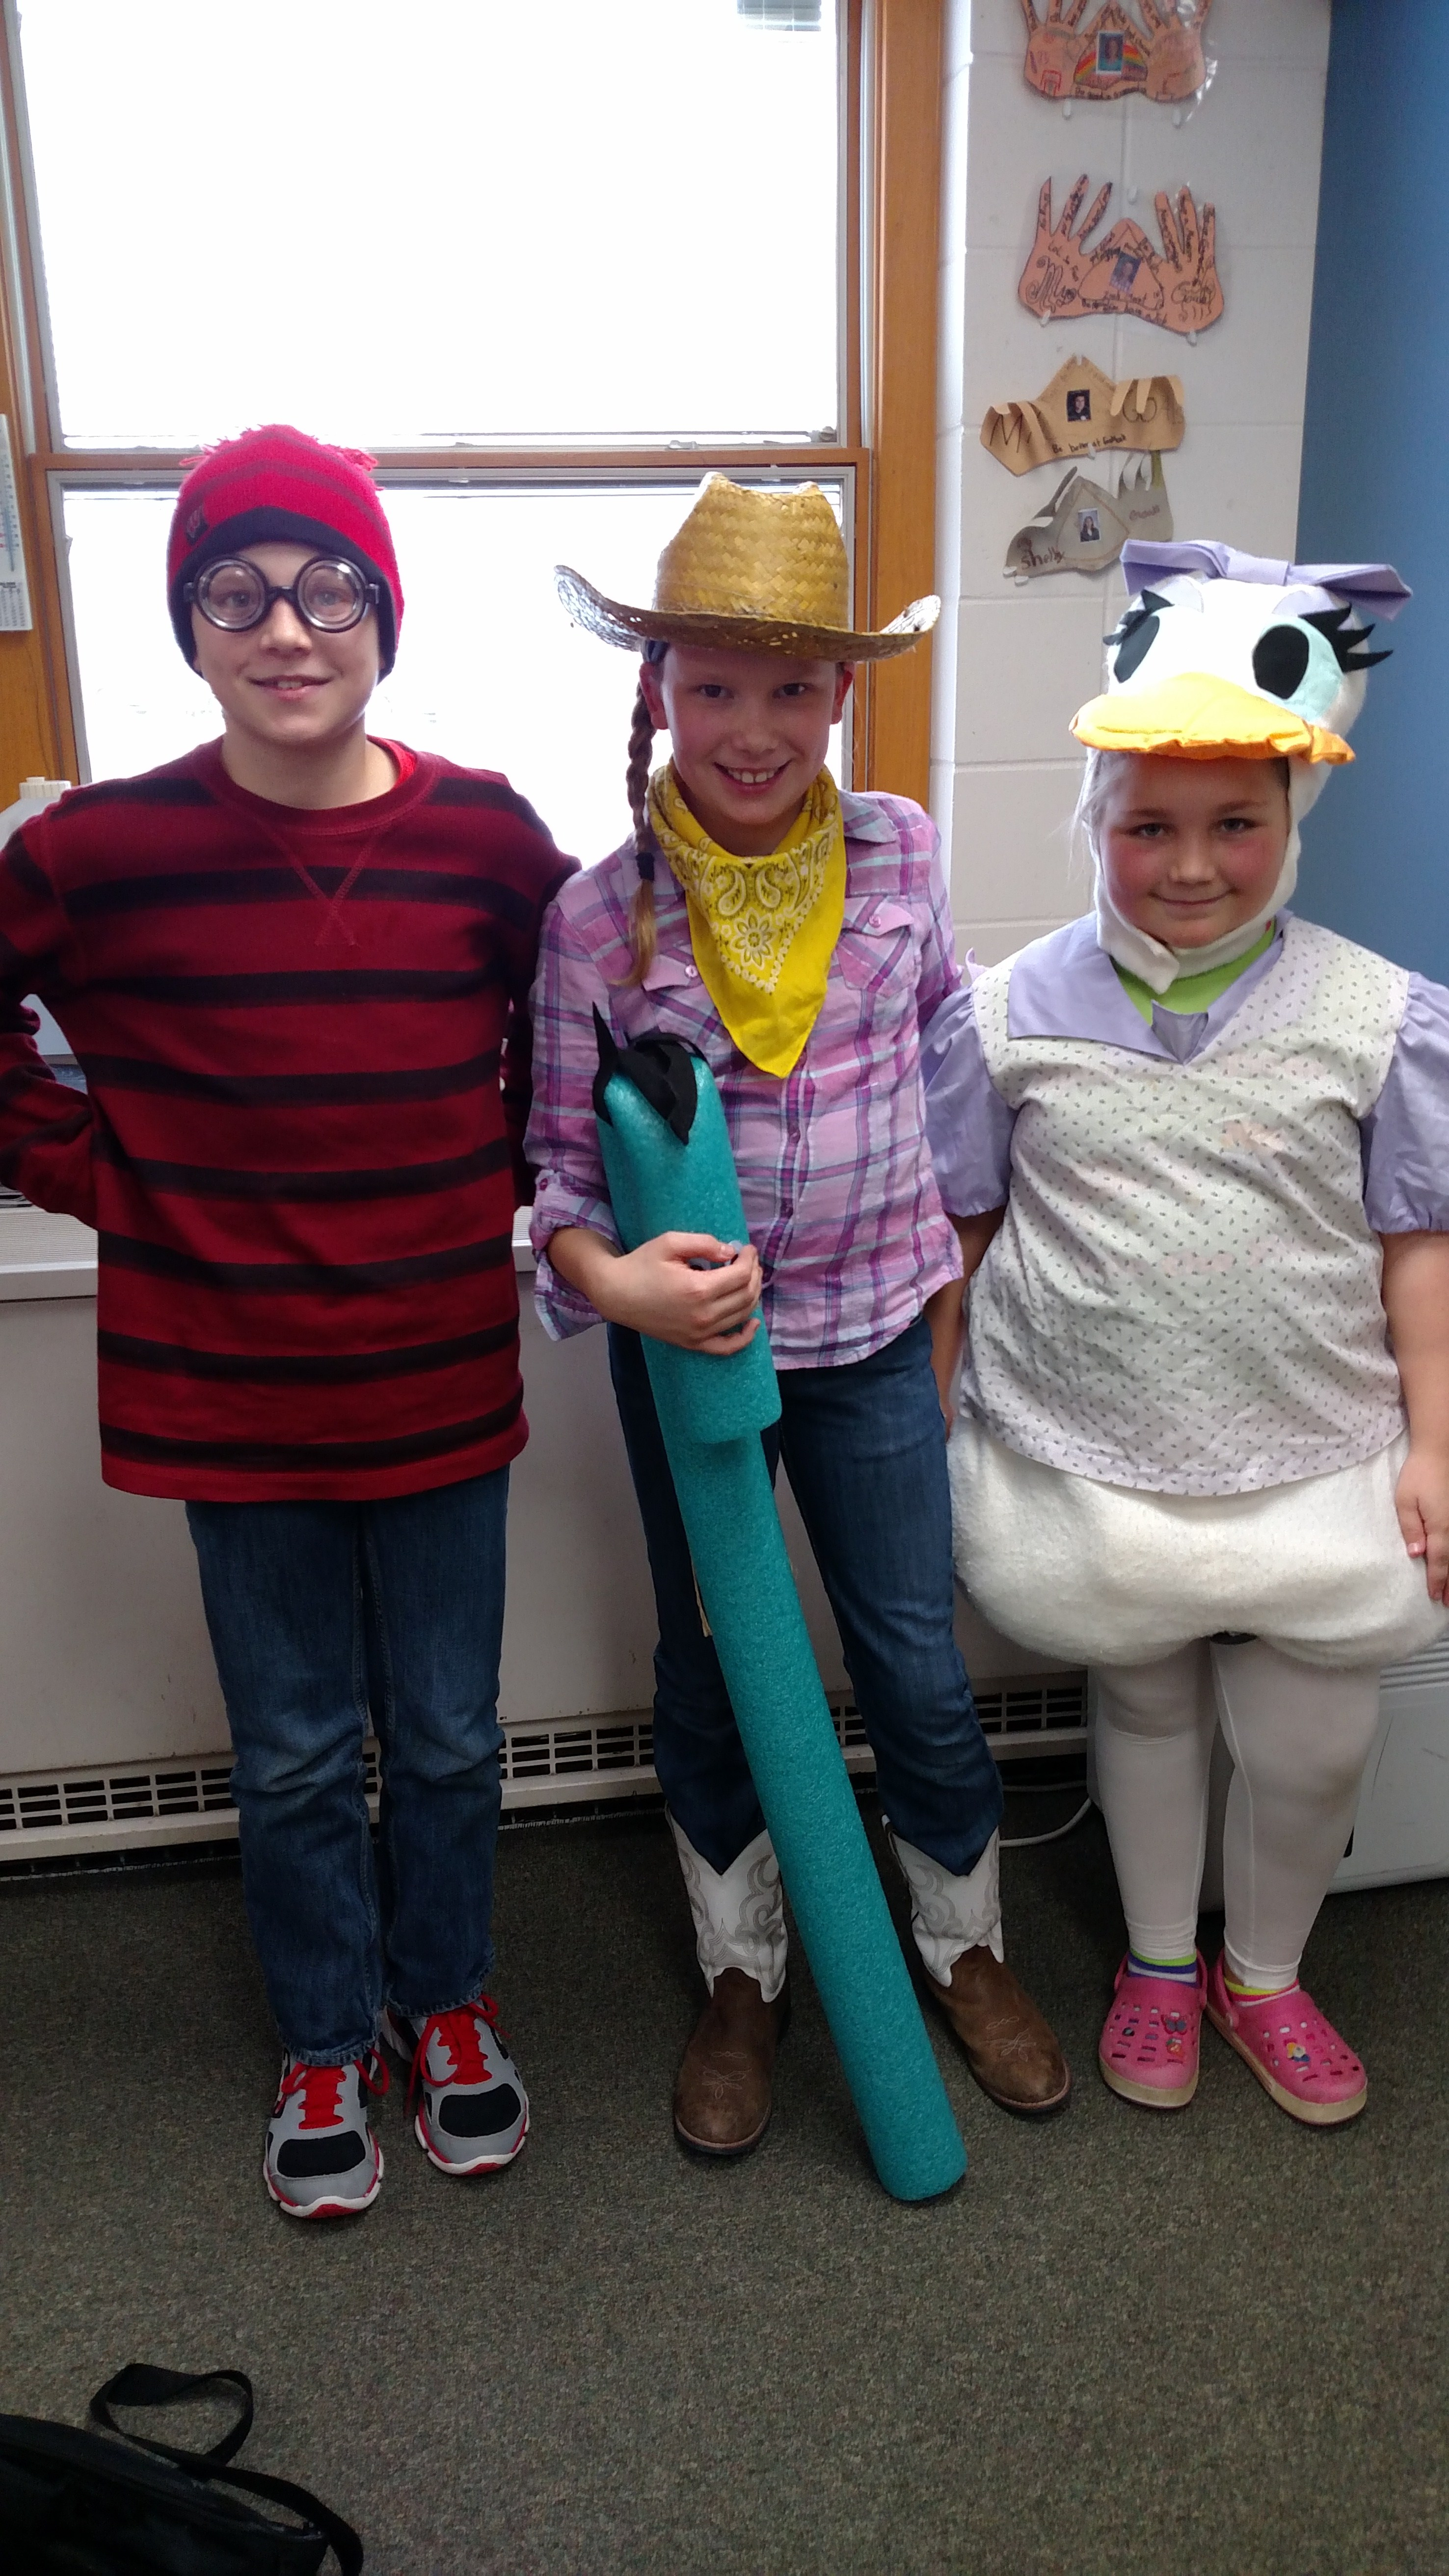 Students in costume.